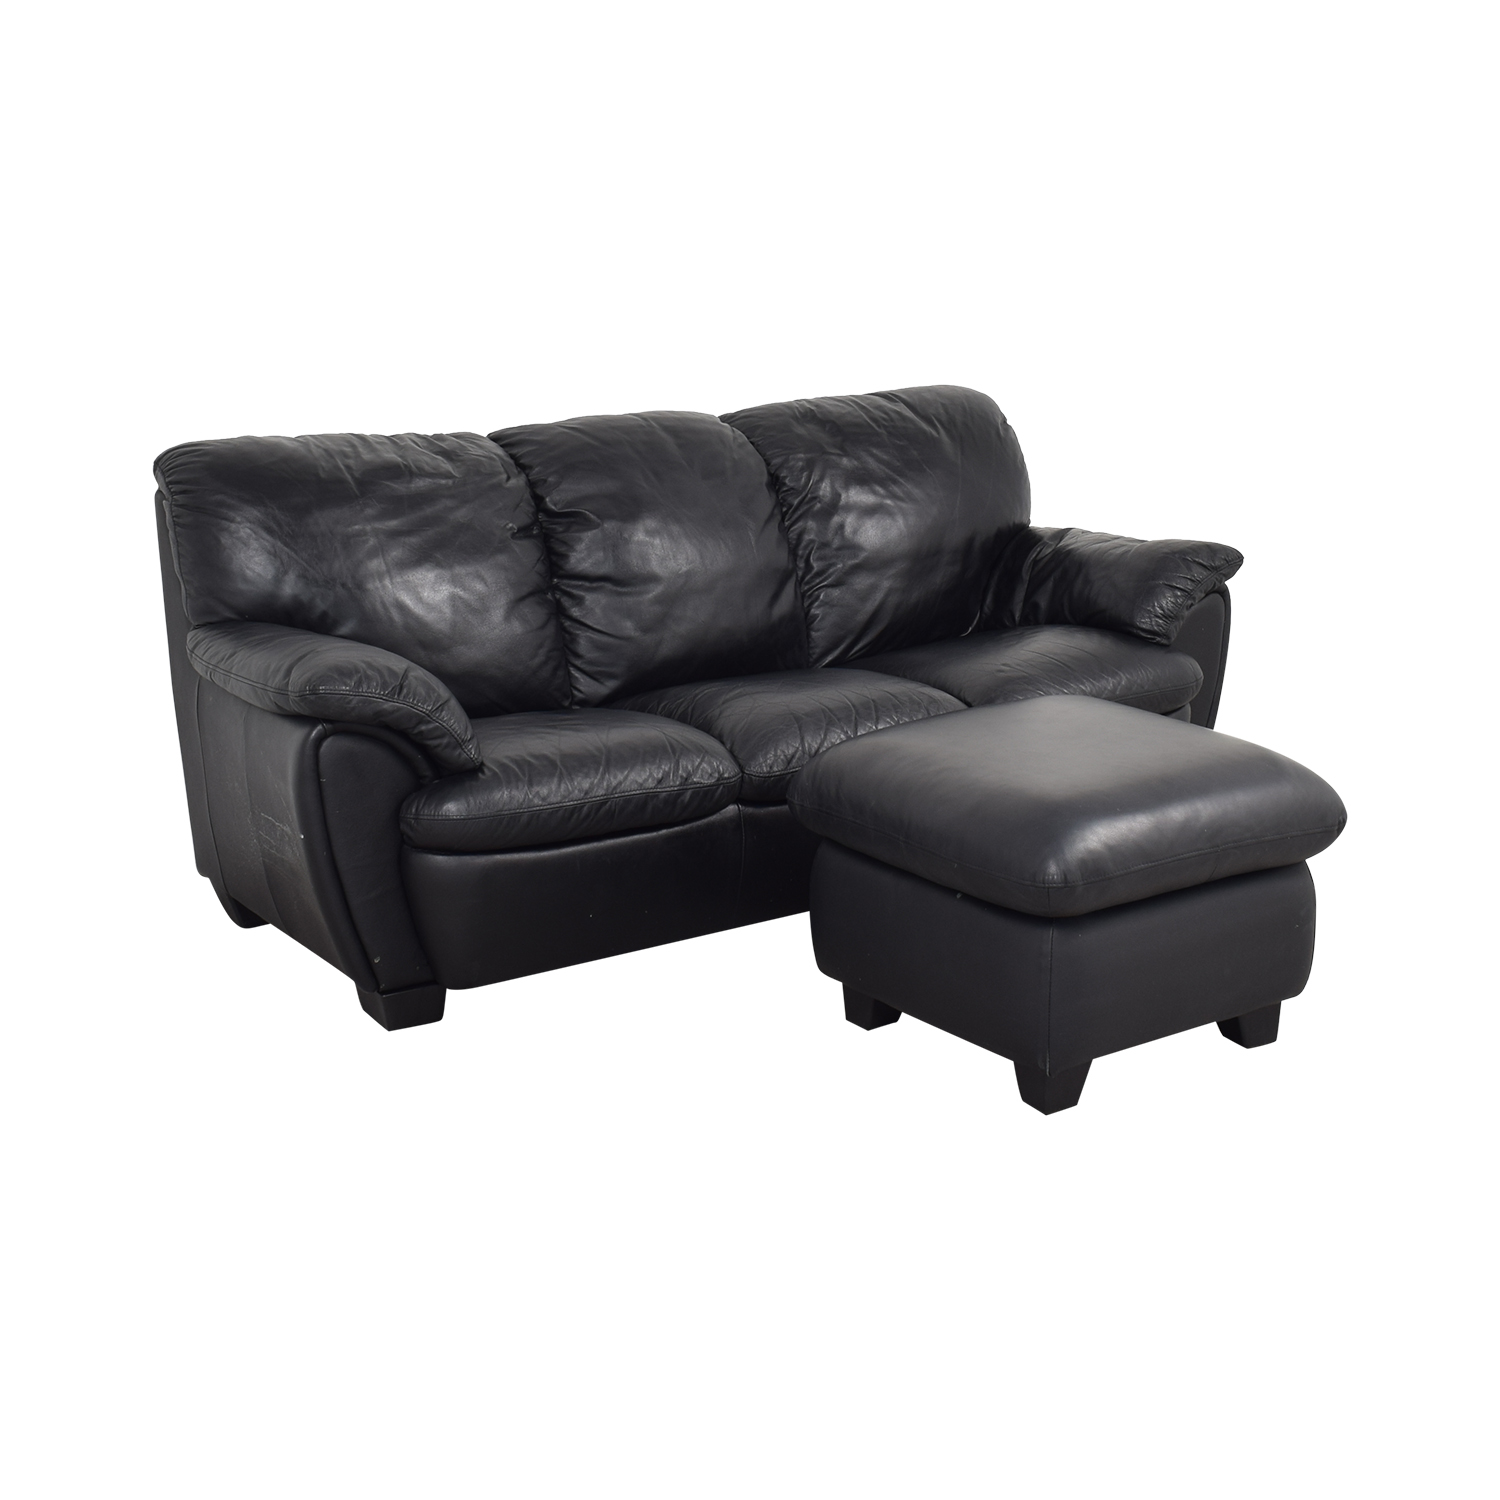 Broyhill Furniture Broyhill Leather Sofa and Ottoman price